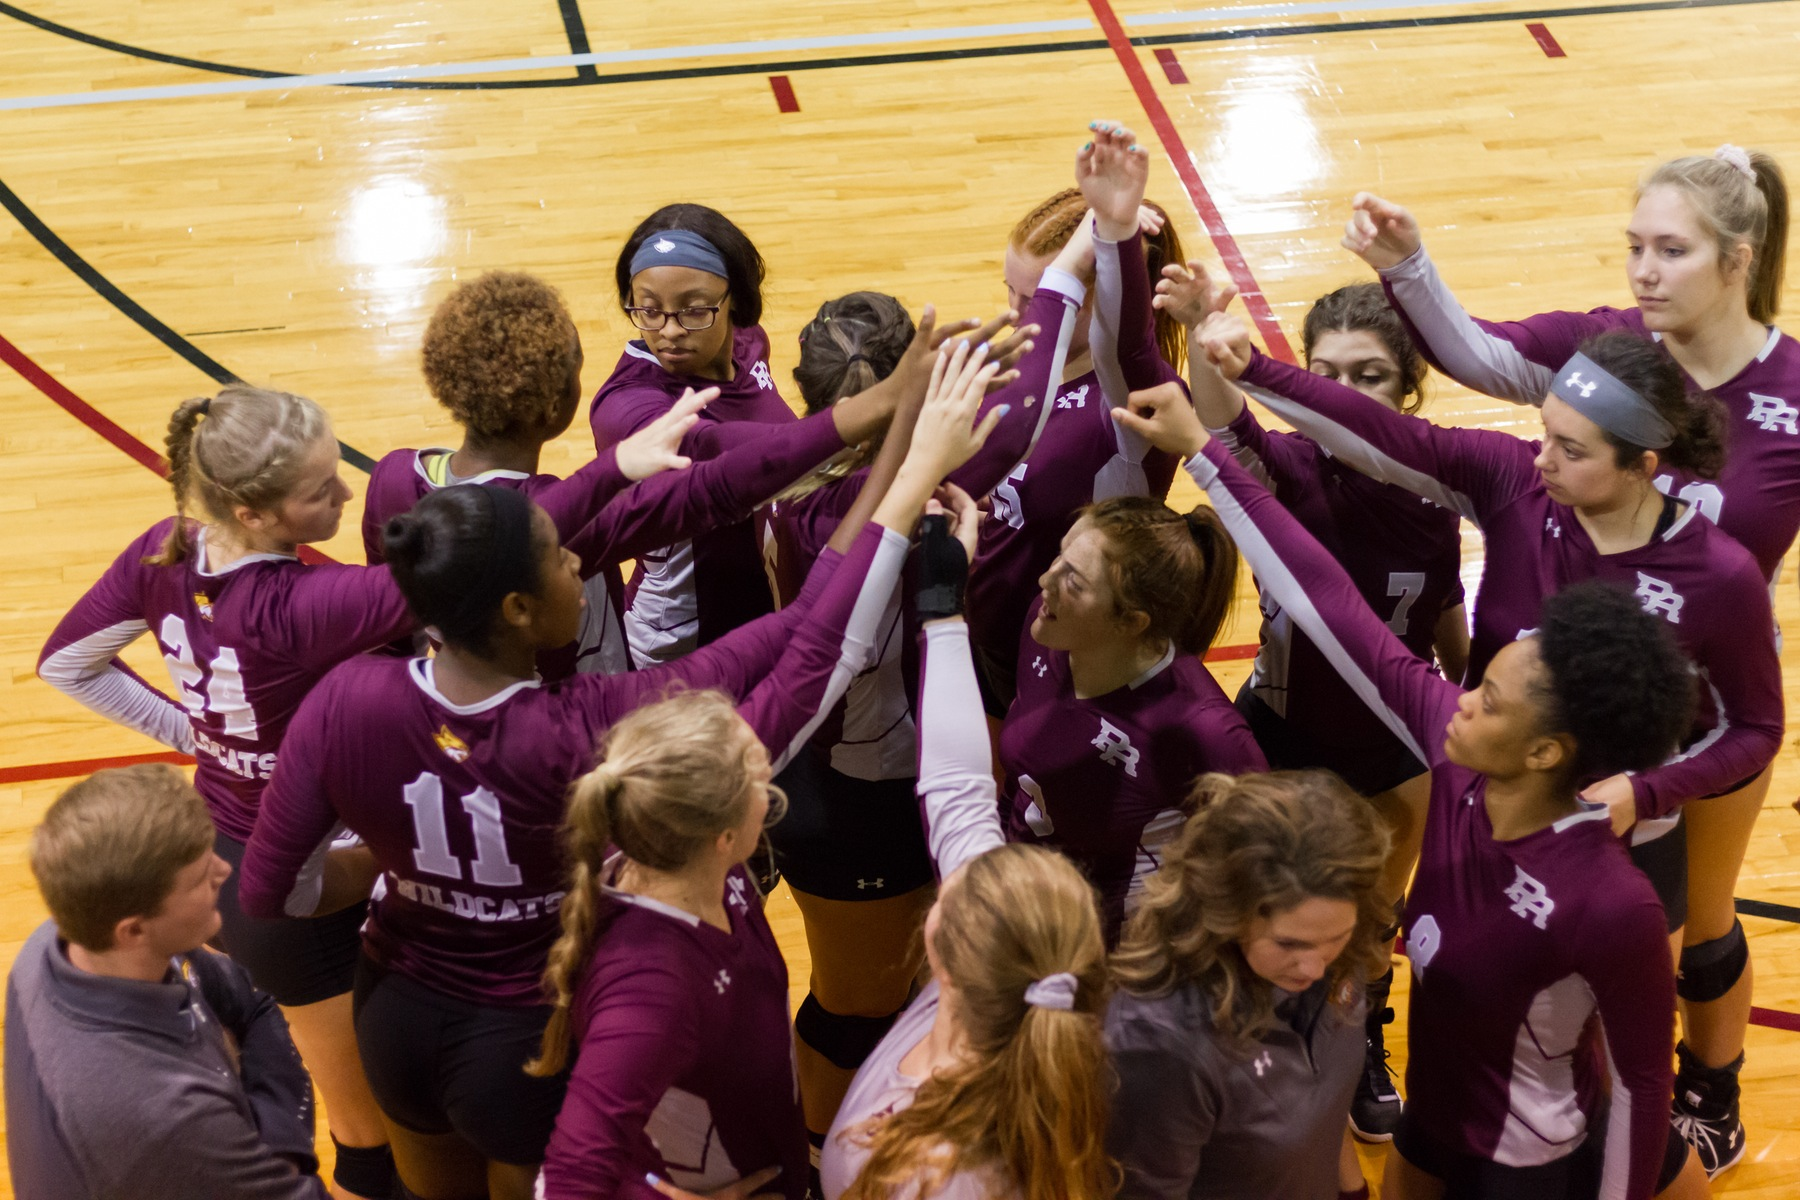 Pearl River fell to Panola College 3-0 (14-25, 9-25, 13-25) on Friday, Sept. 20, 2019 at Shivers Gymnasium in Poplarville, Miss. (BRETT RUSS/PRCC ATHLETICS)